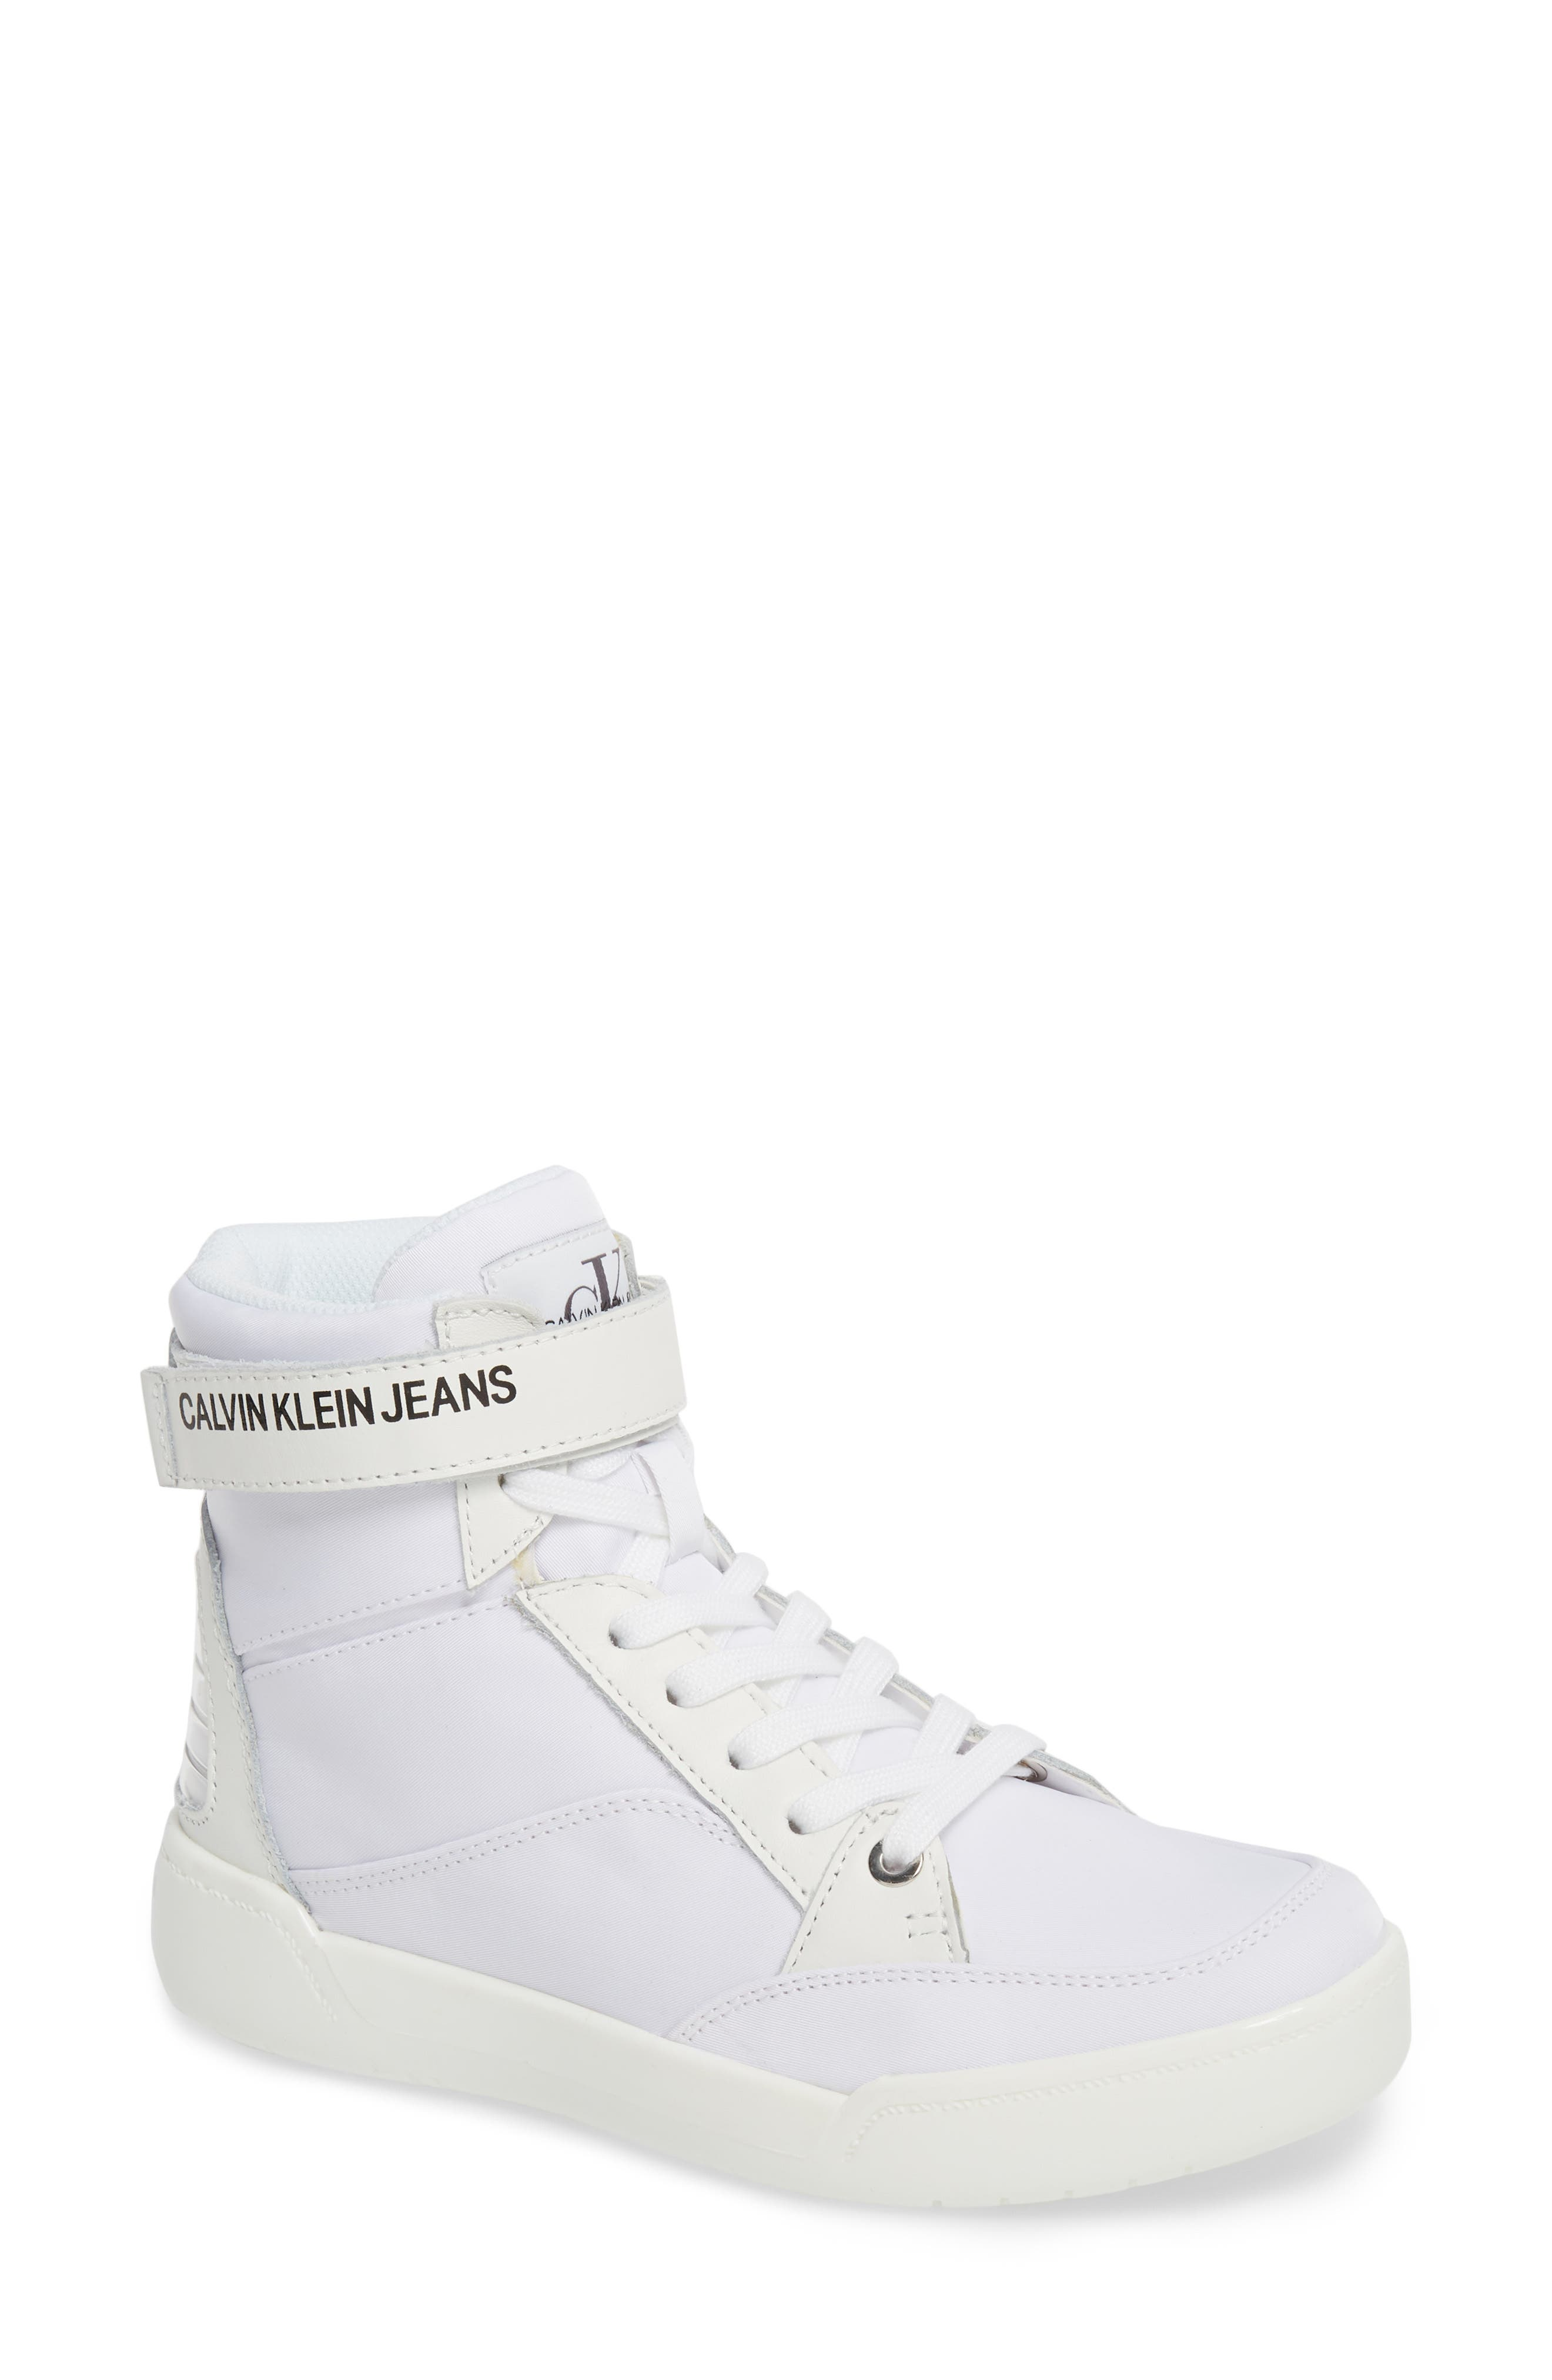 Nelda High Top Sneaker,                         Main,                         color, WHITE LEATHER